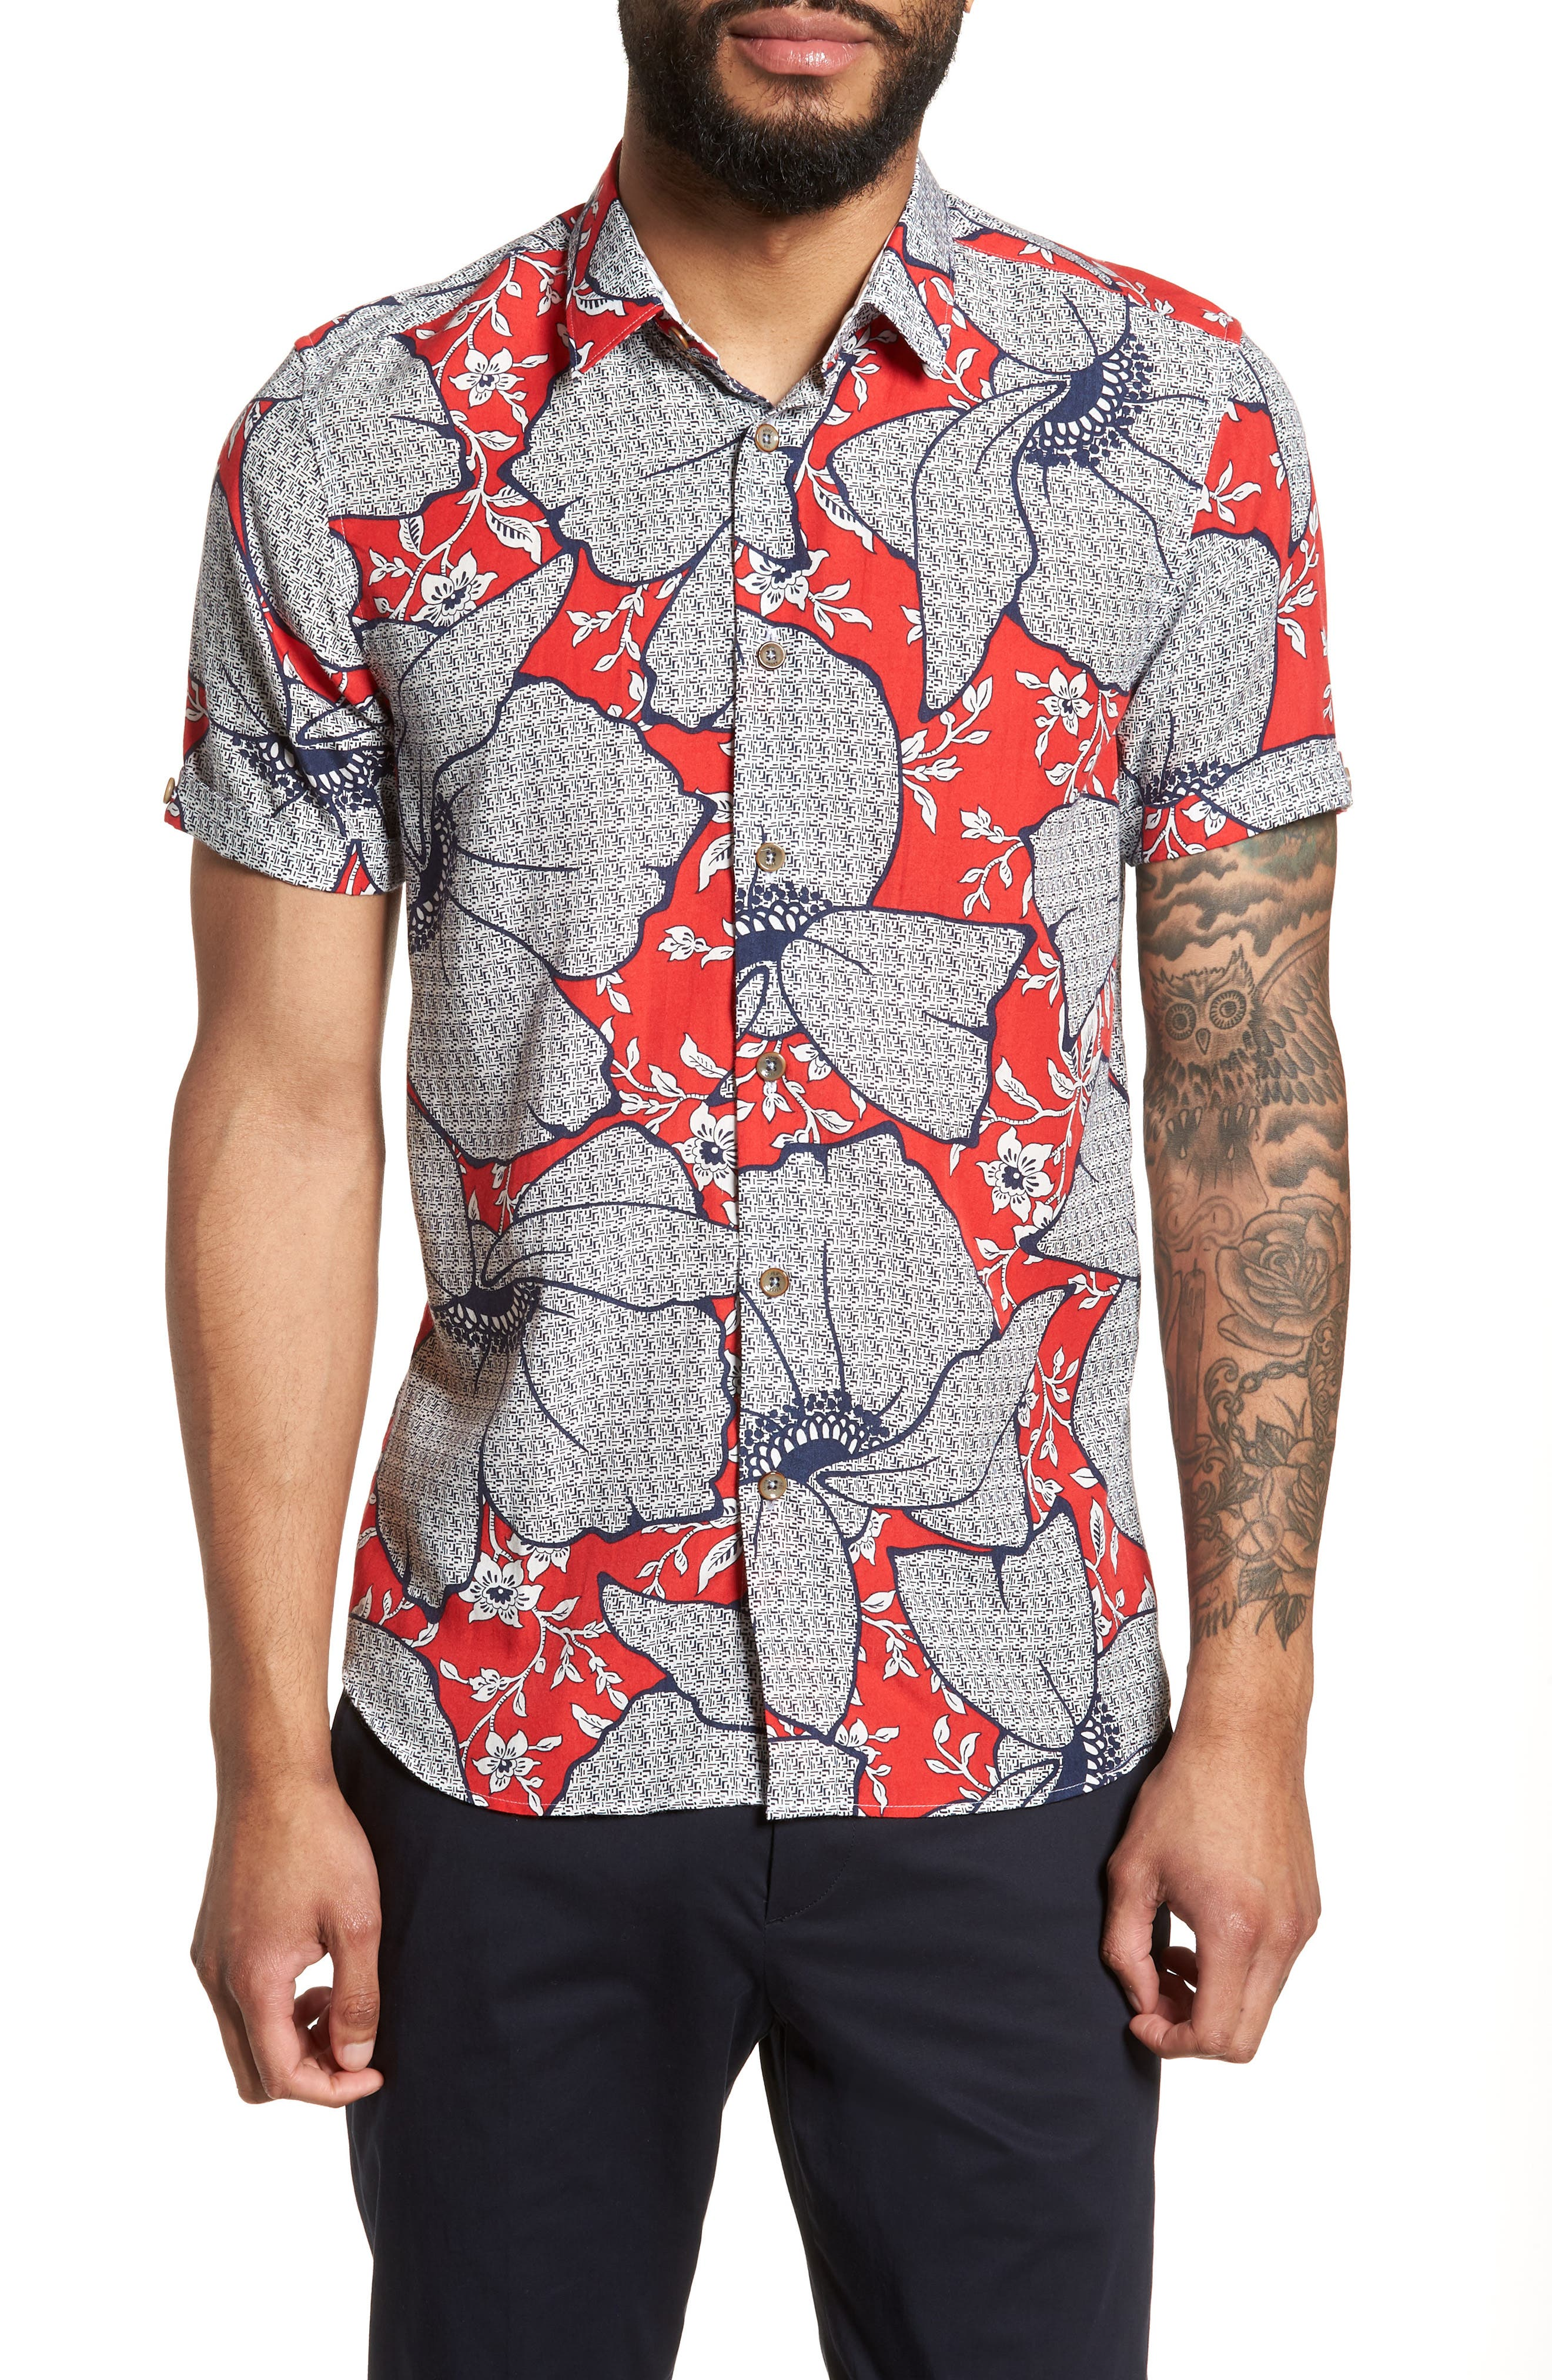 Sohot Trim Fit Floral Sport Shirt,                             Main thumbnail 1, color,                             Red